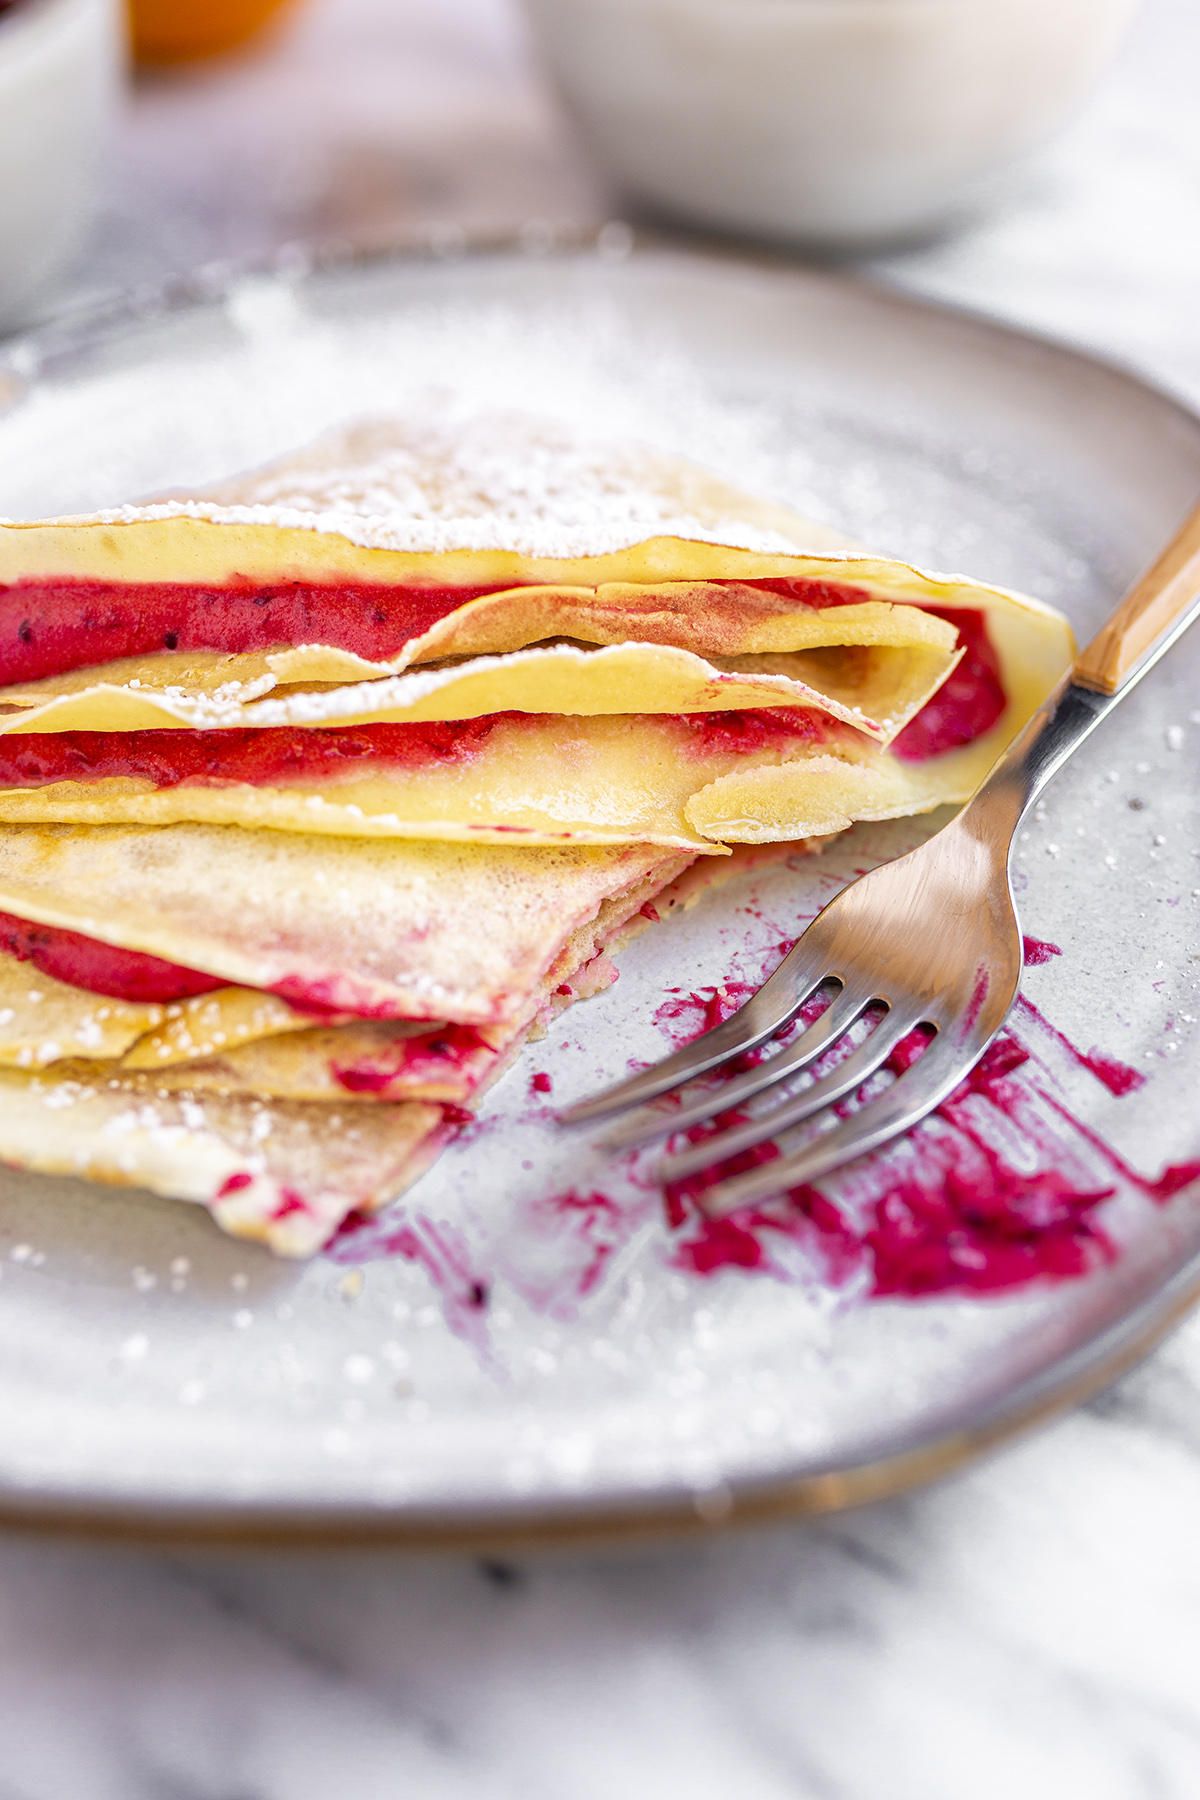 Delicious French Crepes filled with Cranberry, Orange and Mascarpone. Great for Breakfast, brunch or dessert.